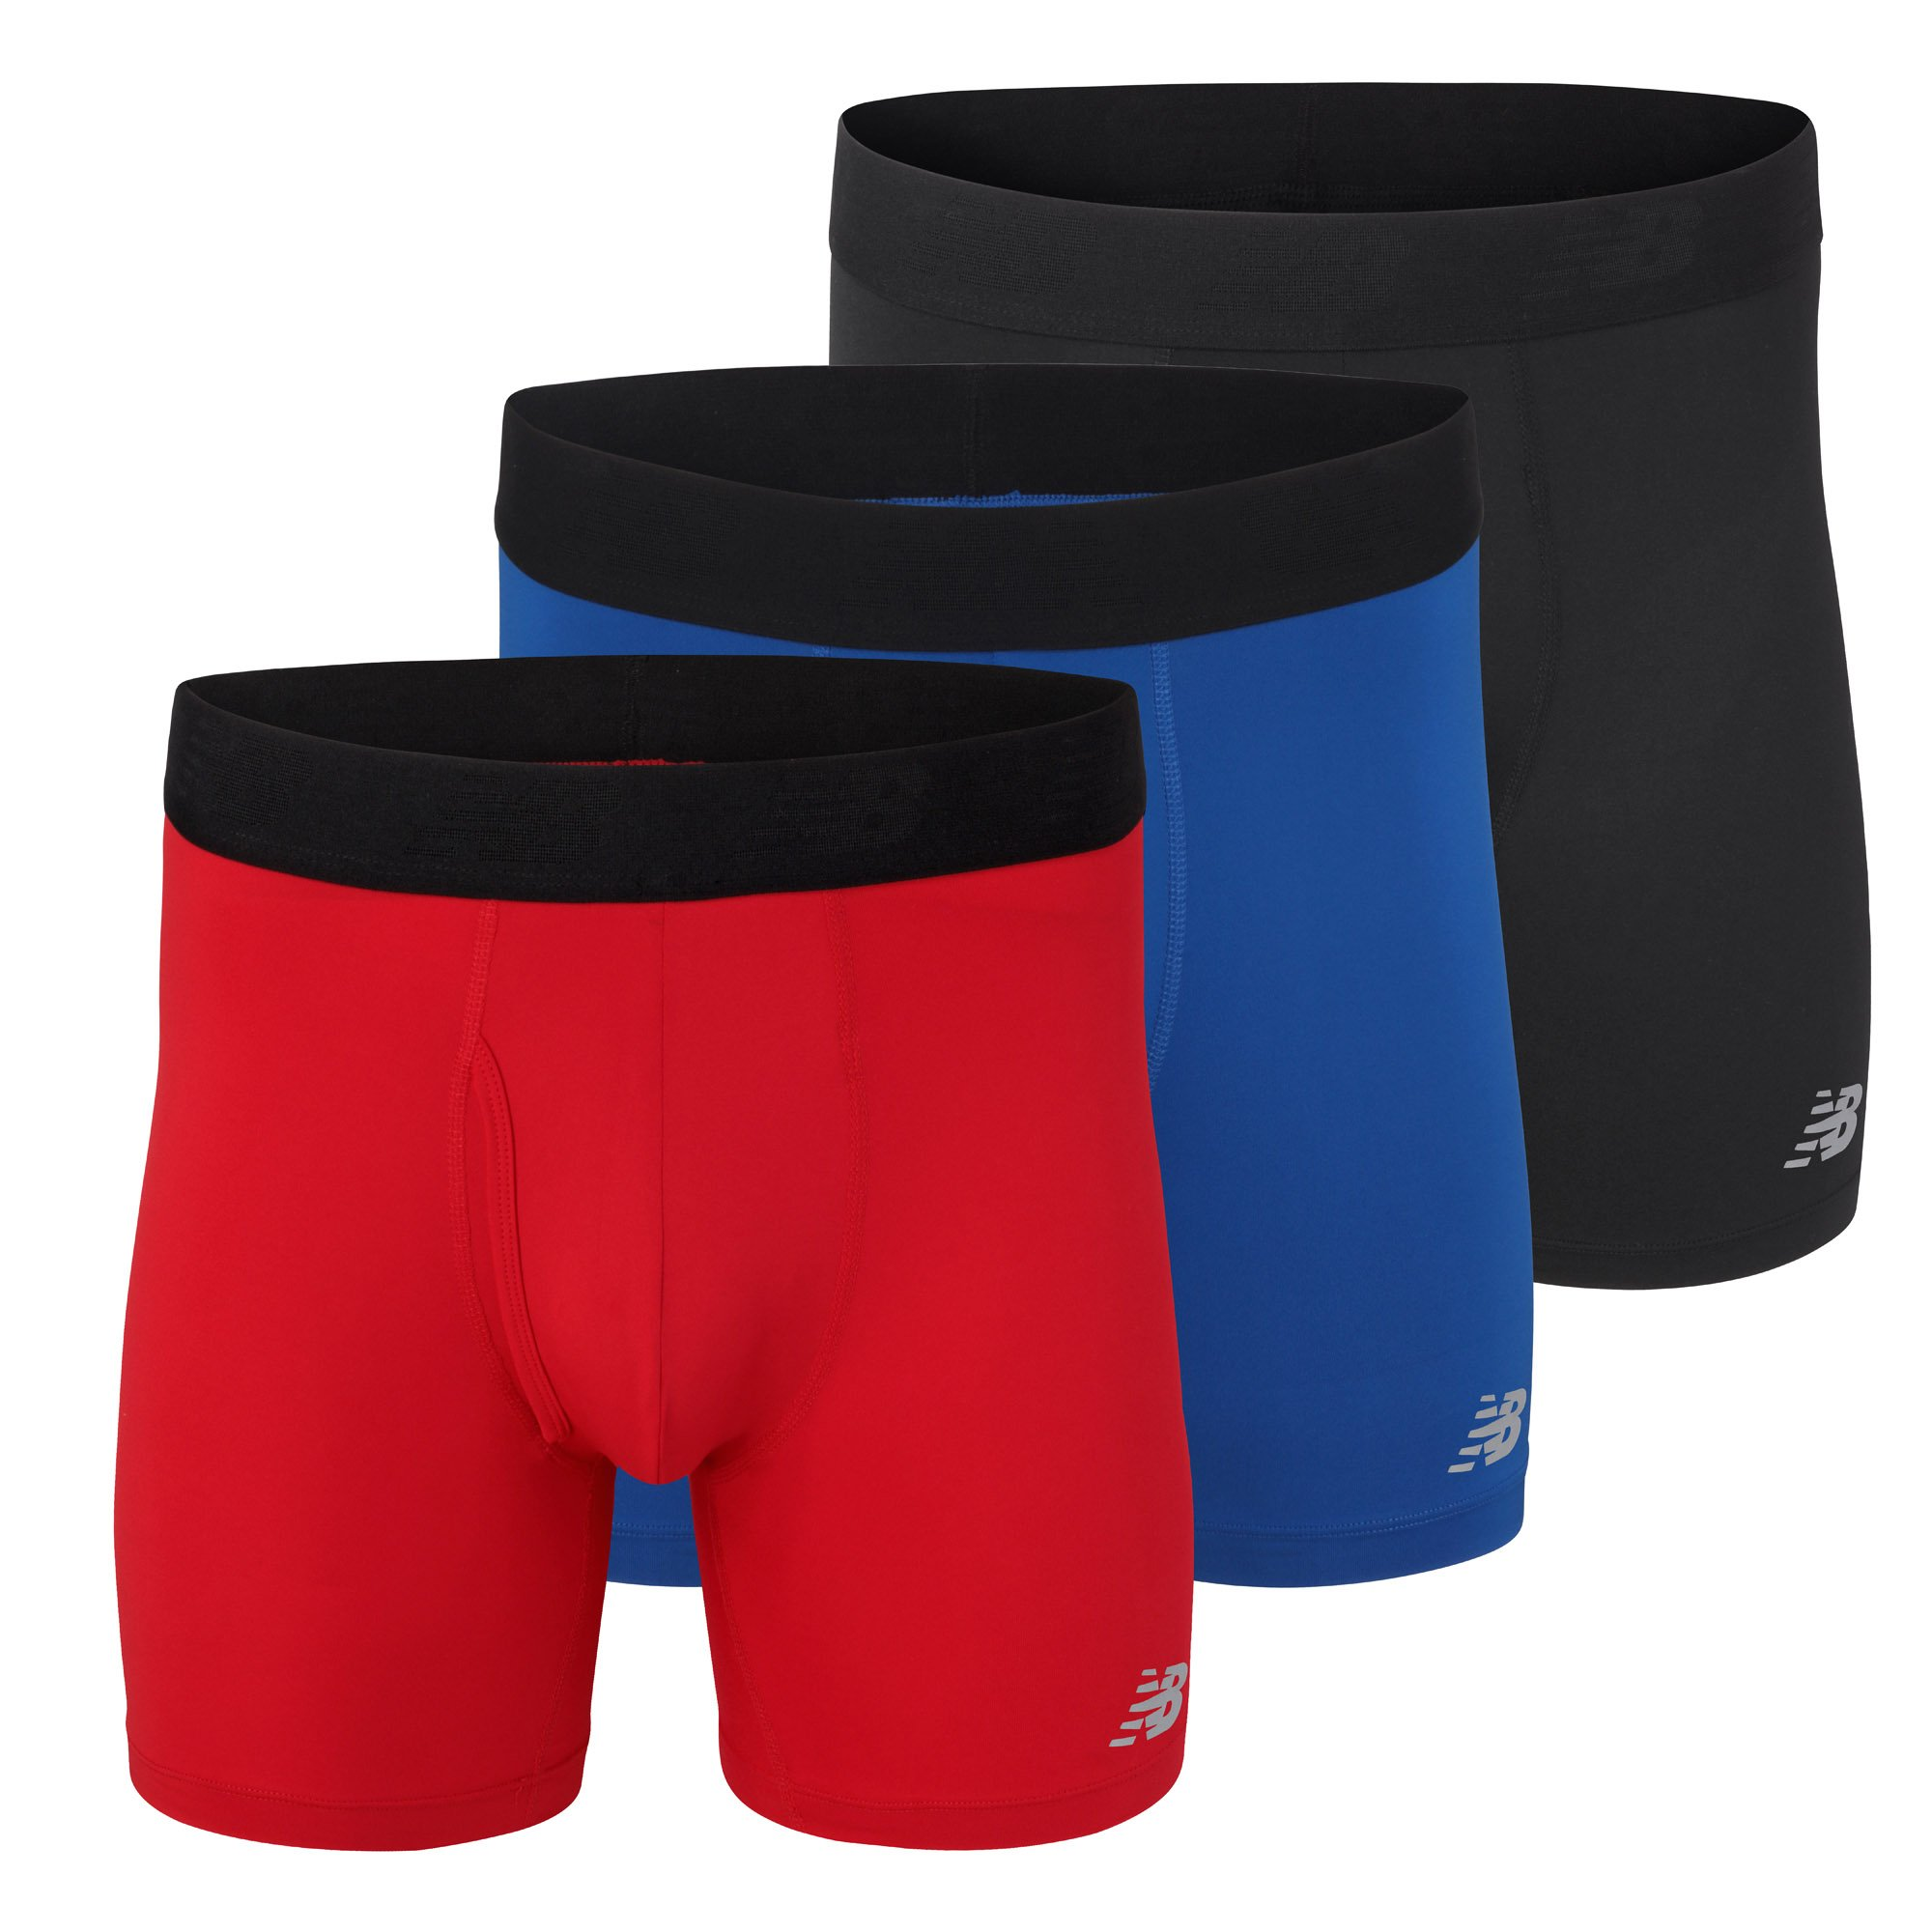 New Balance Men's 6'' Boxer Brief Fly Front with Pouch, 3-Pack,Black/Team Red/Team Blue, X-Large (40''-42'') by New Balance